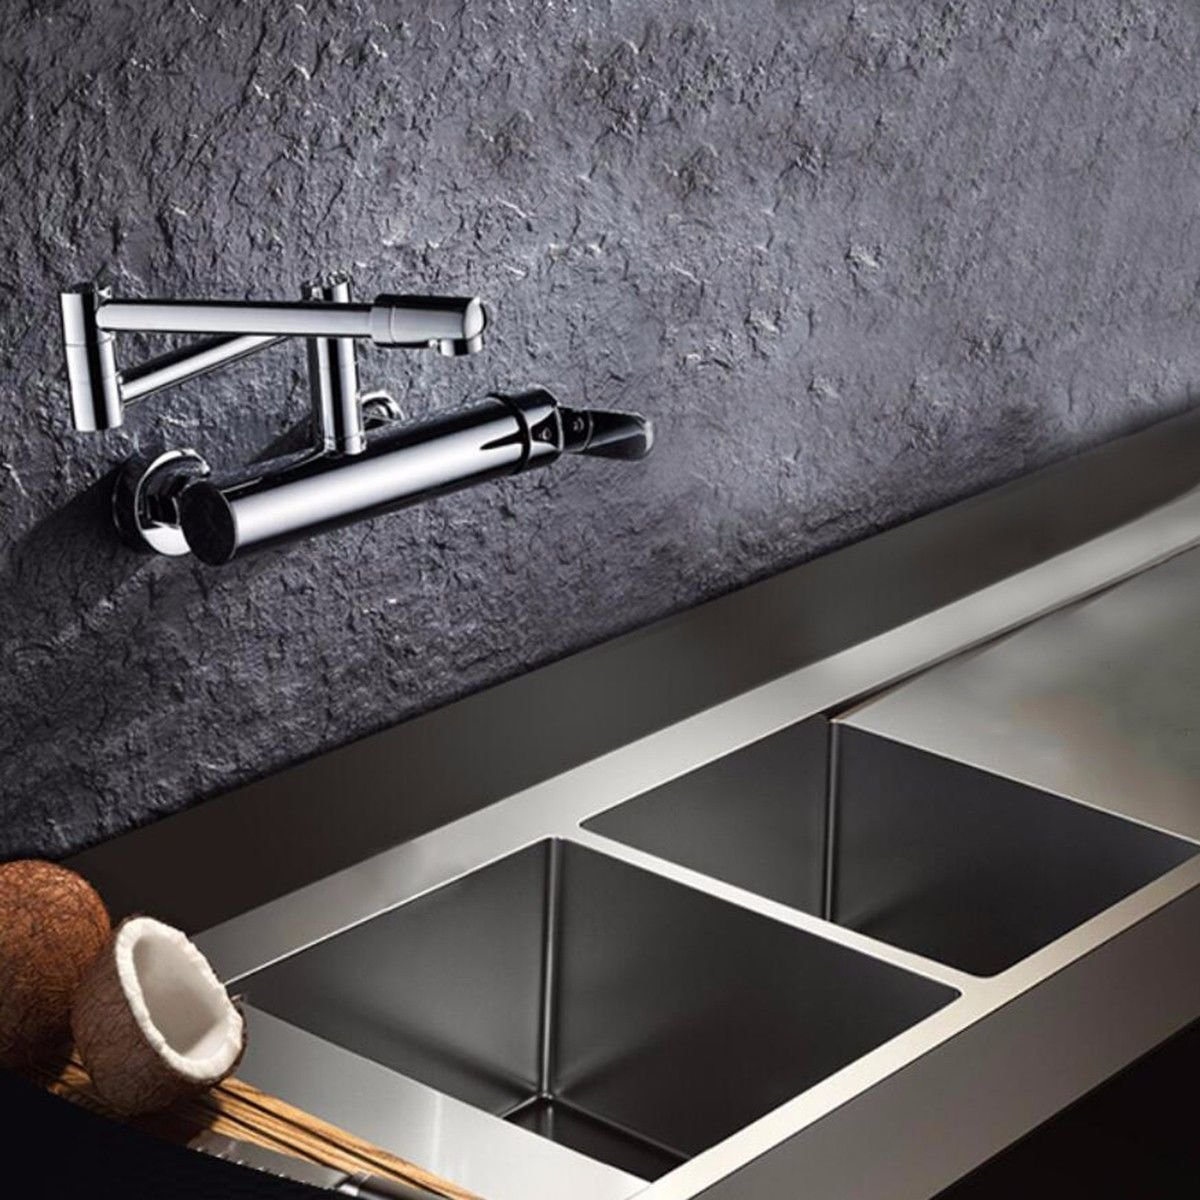 A A A XPYFaucet Faucet Tap Taps Folding wall-mounted kitchen hot and cold single-handle wall-mounted sink sink laundry pool can be redated, A 686c7a